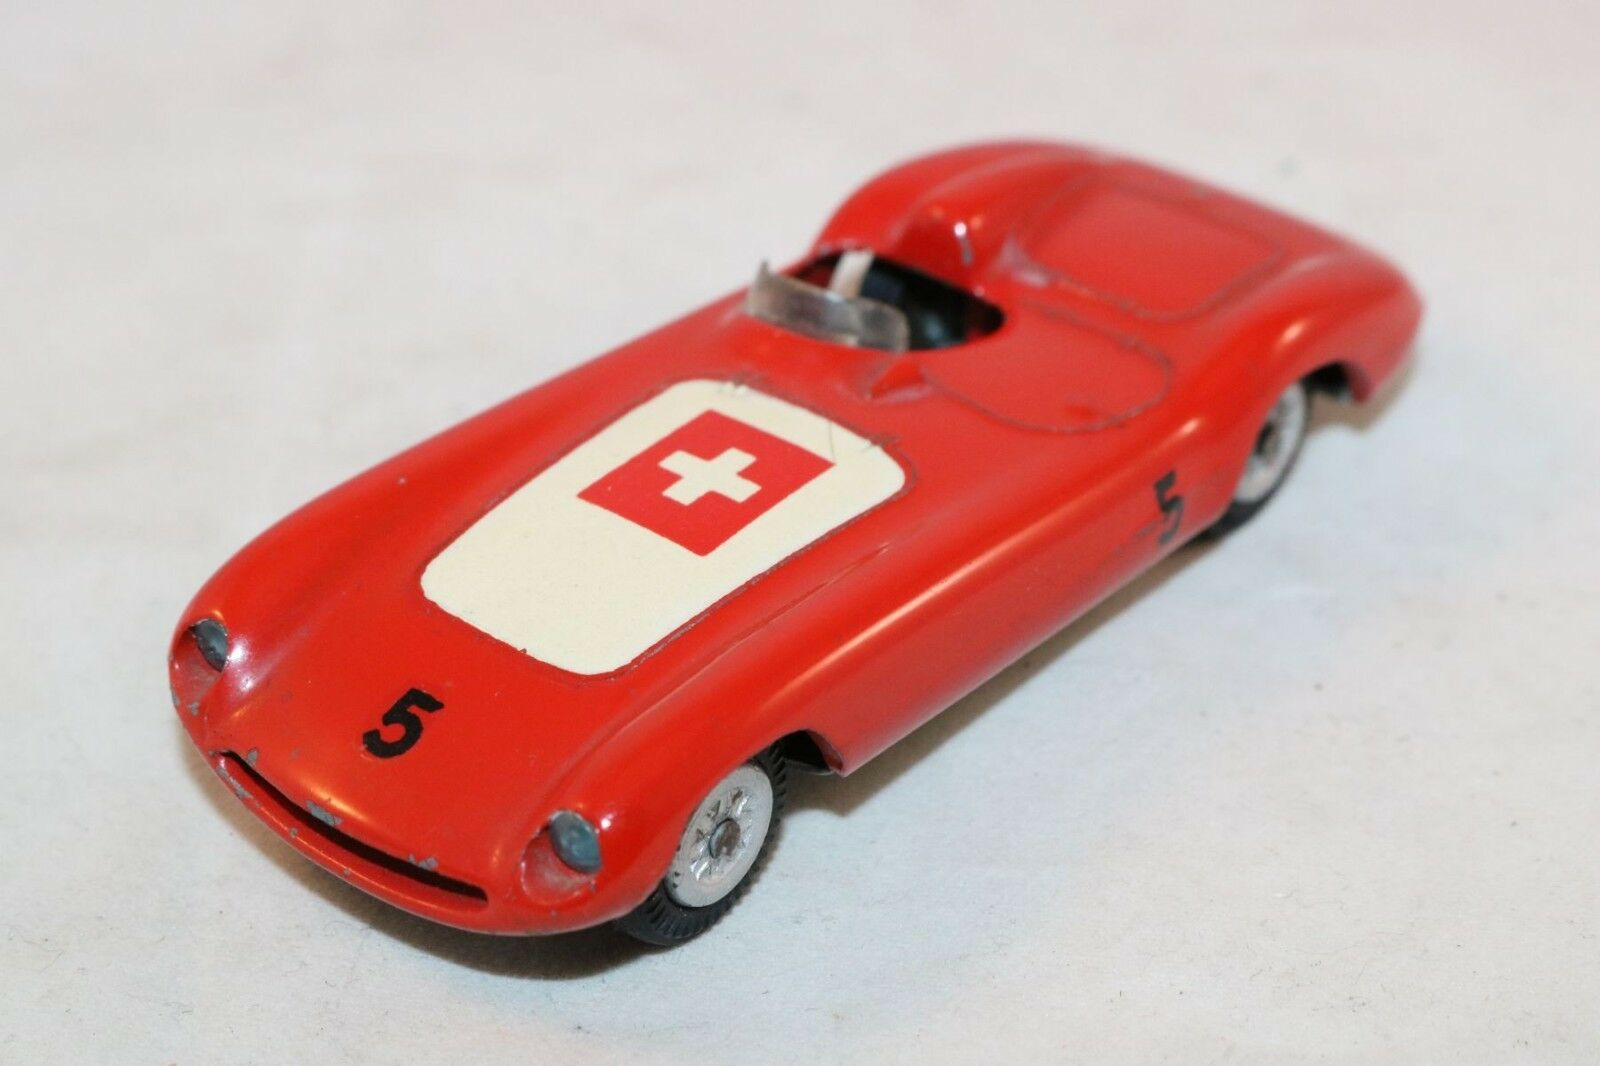 Tekno Denmark 813 Ferrari racing car SWISS FLAG near mint mint mint original condition b67ae1